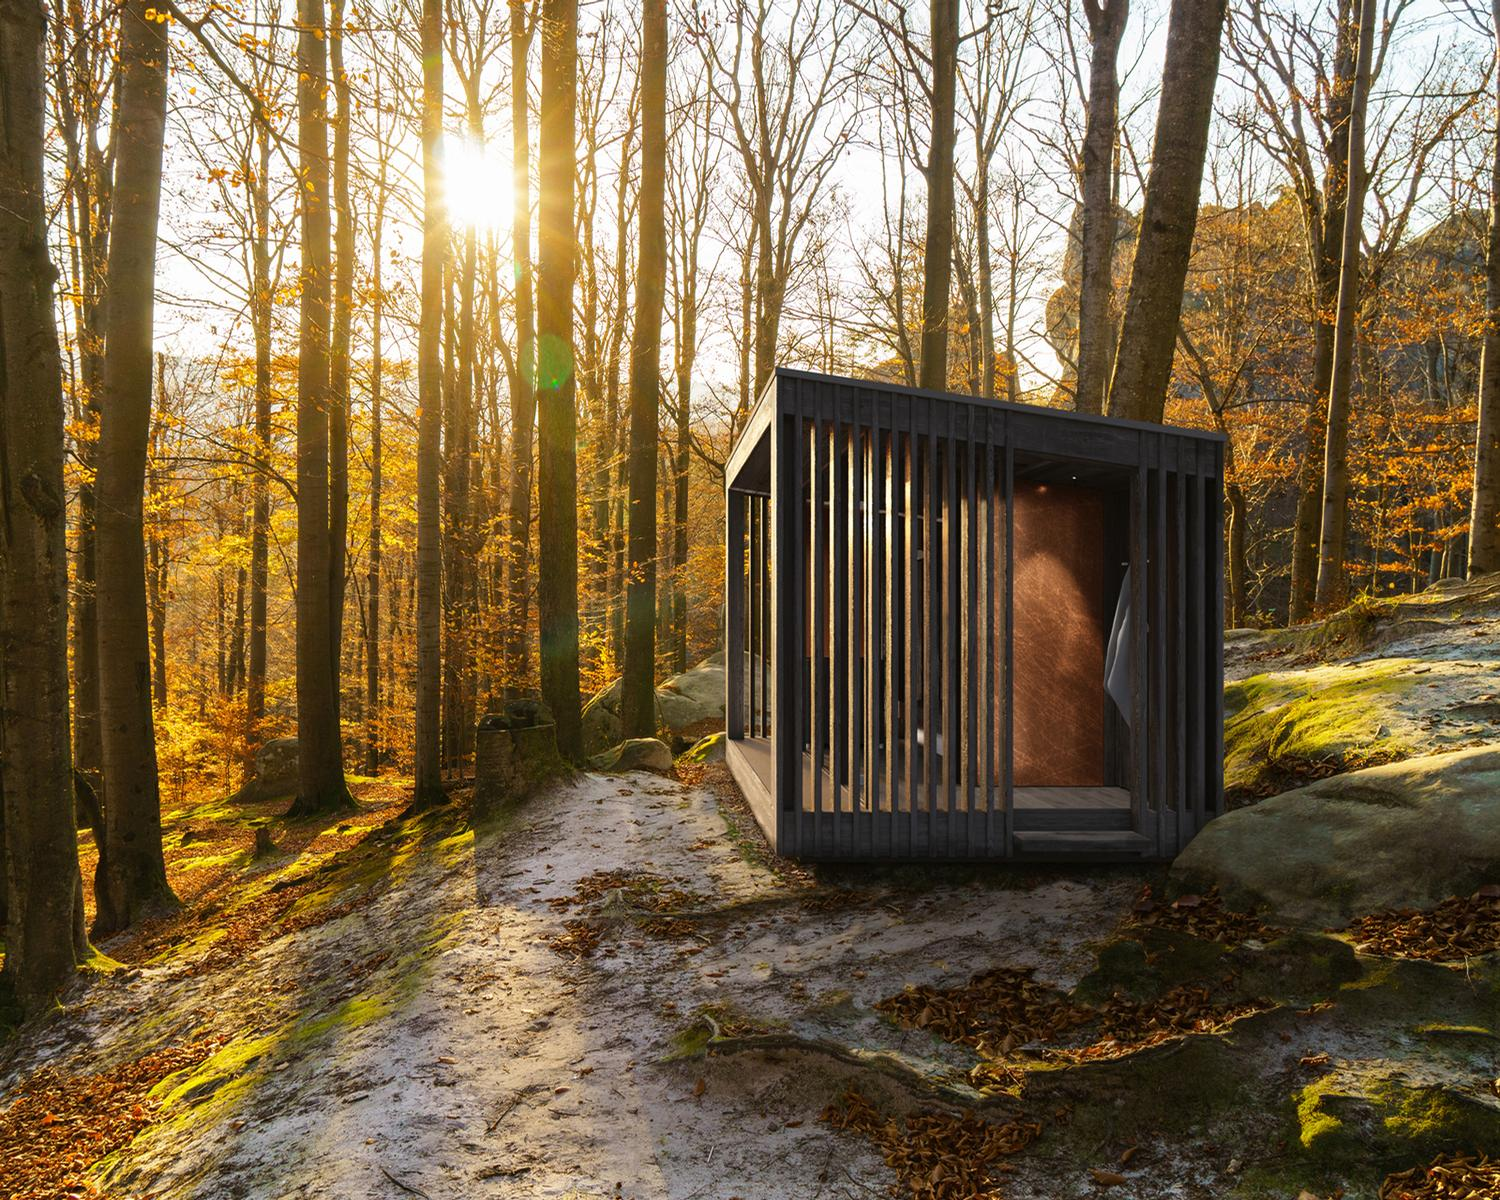 The NatureSauna is described as a tribute to 'open air wellness'